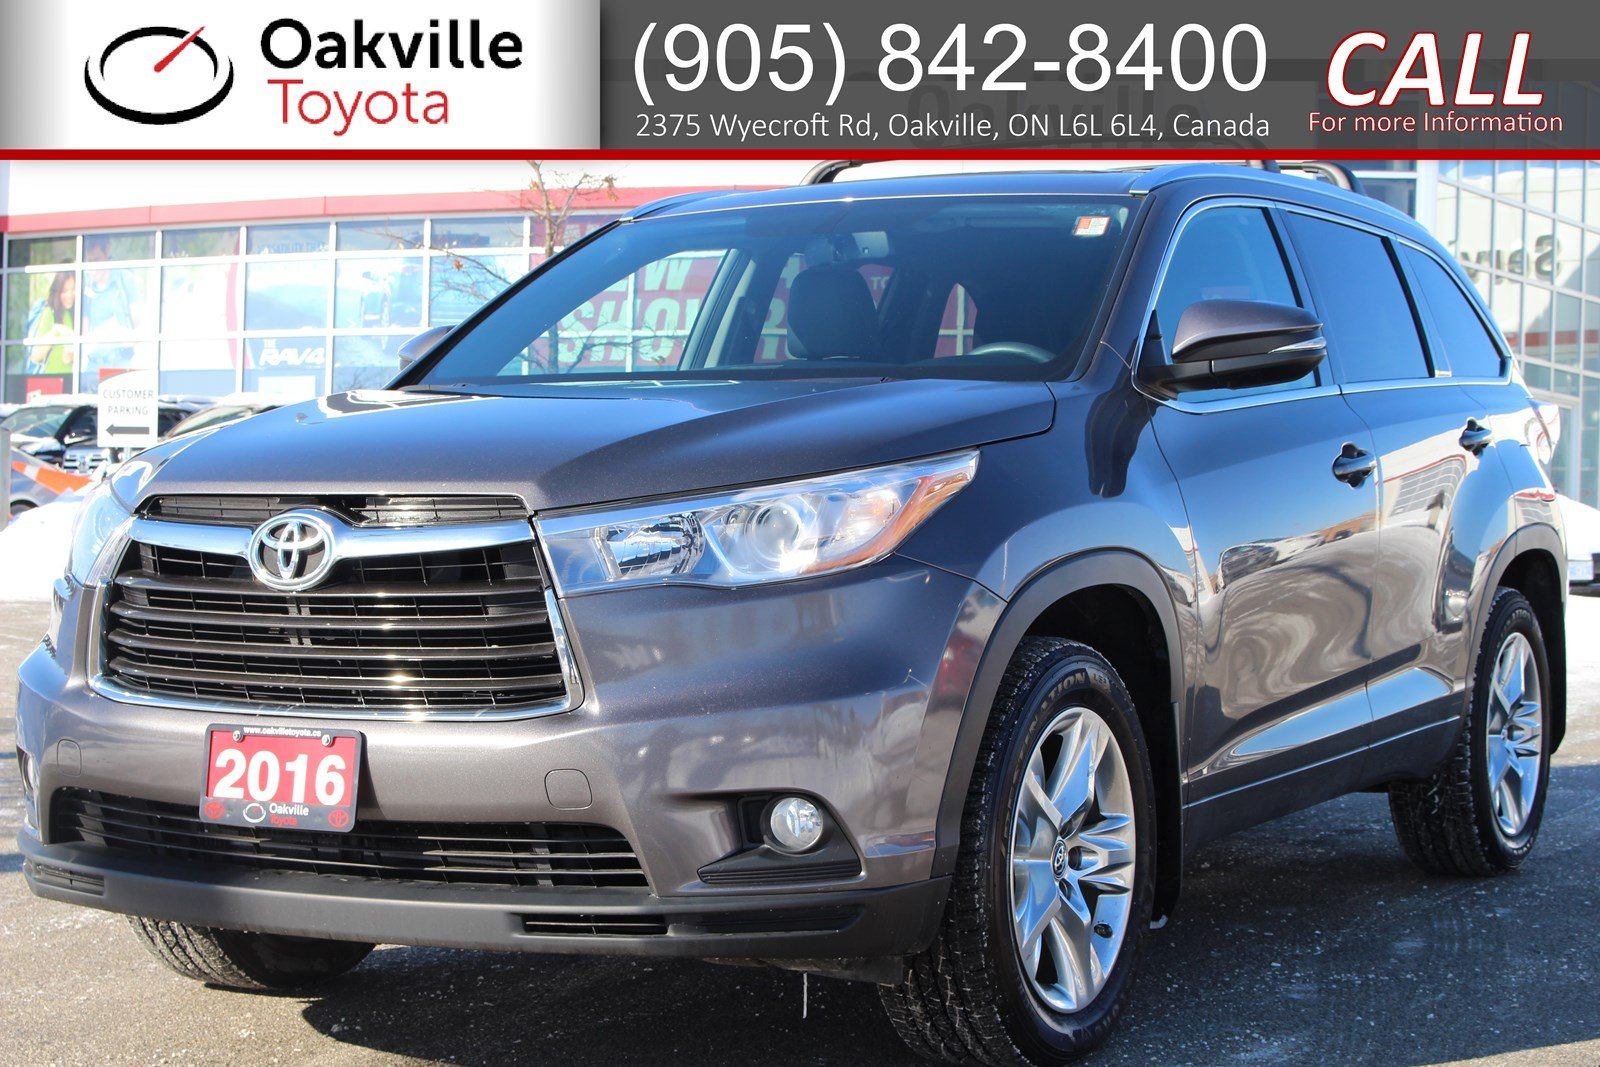 Certified Pre-Owned 2016 Toyota Highlander Limited with Clean Carfax